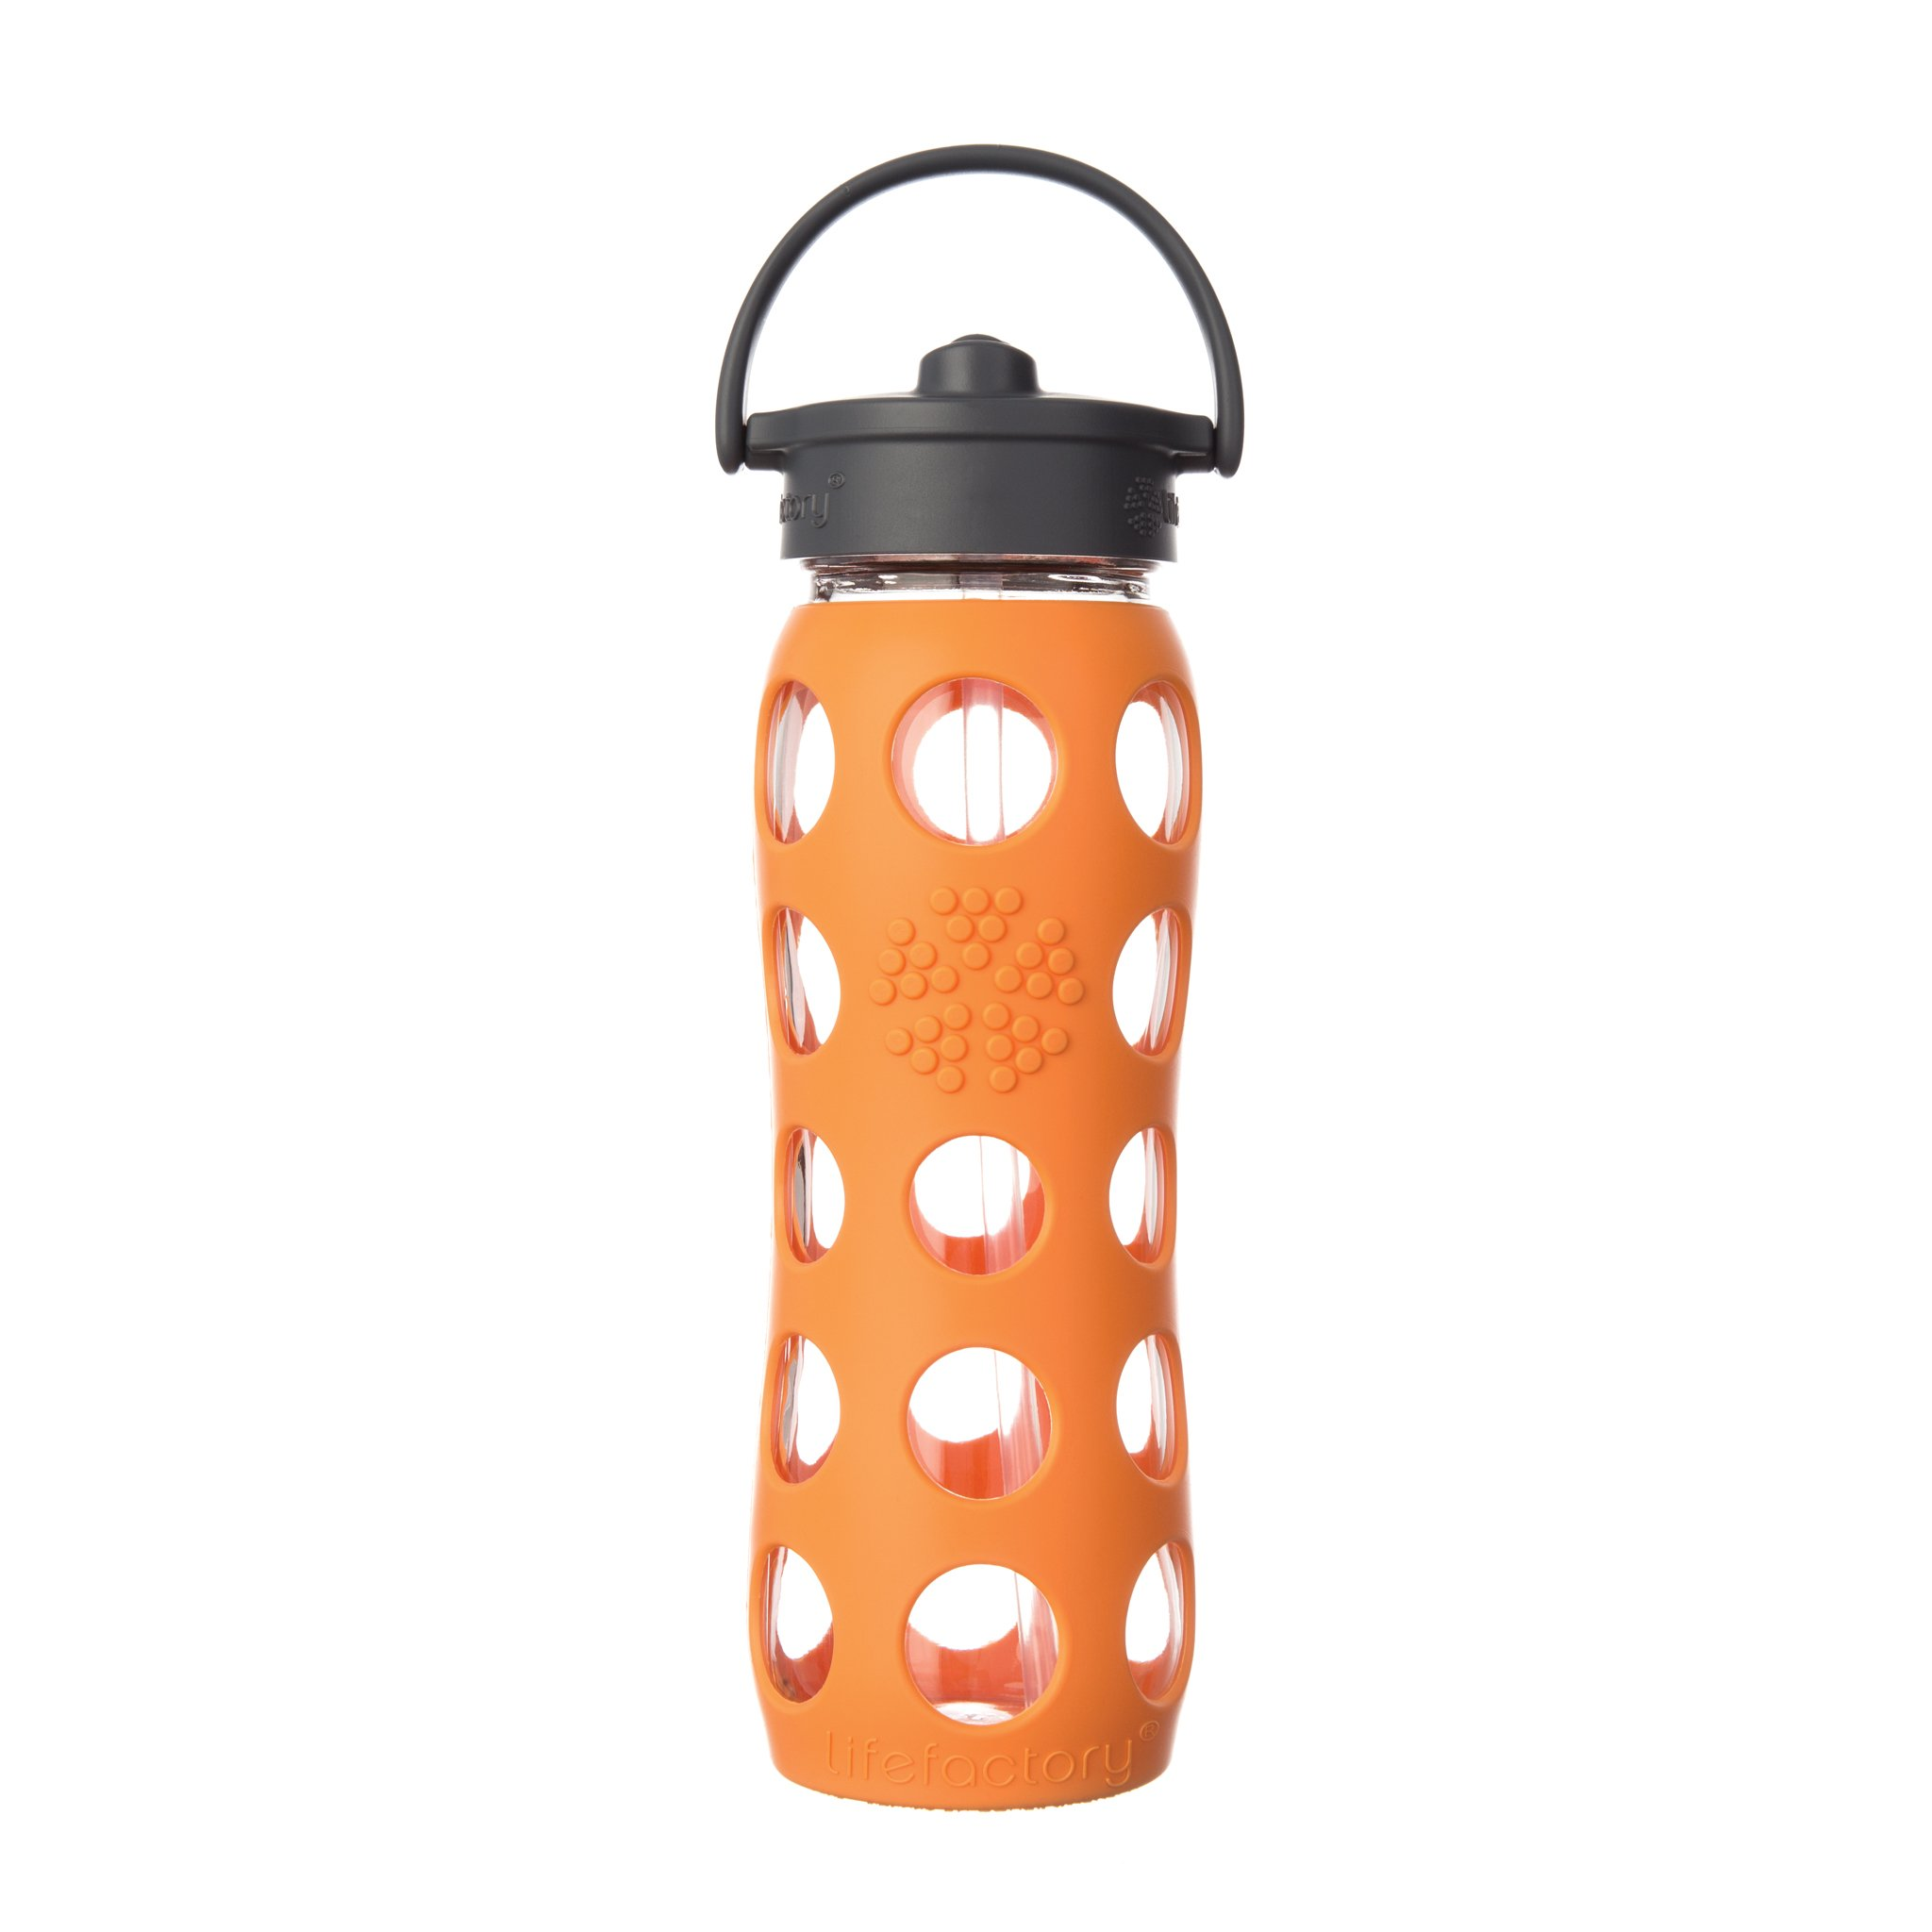 Lifefactory 22-Ounce BPA-Free Glass Water Bottle with Straw Cap and Silicone Sleeve, Orange